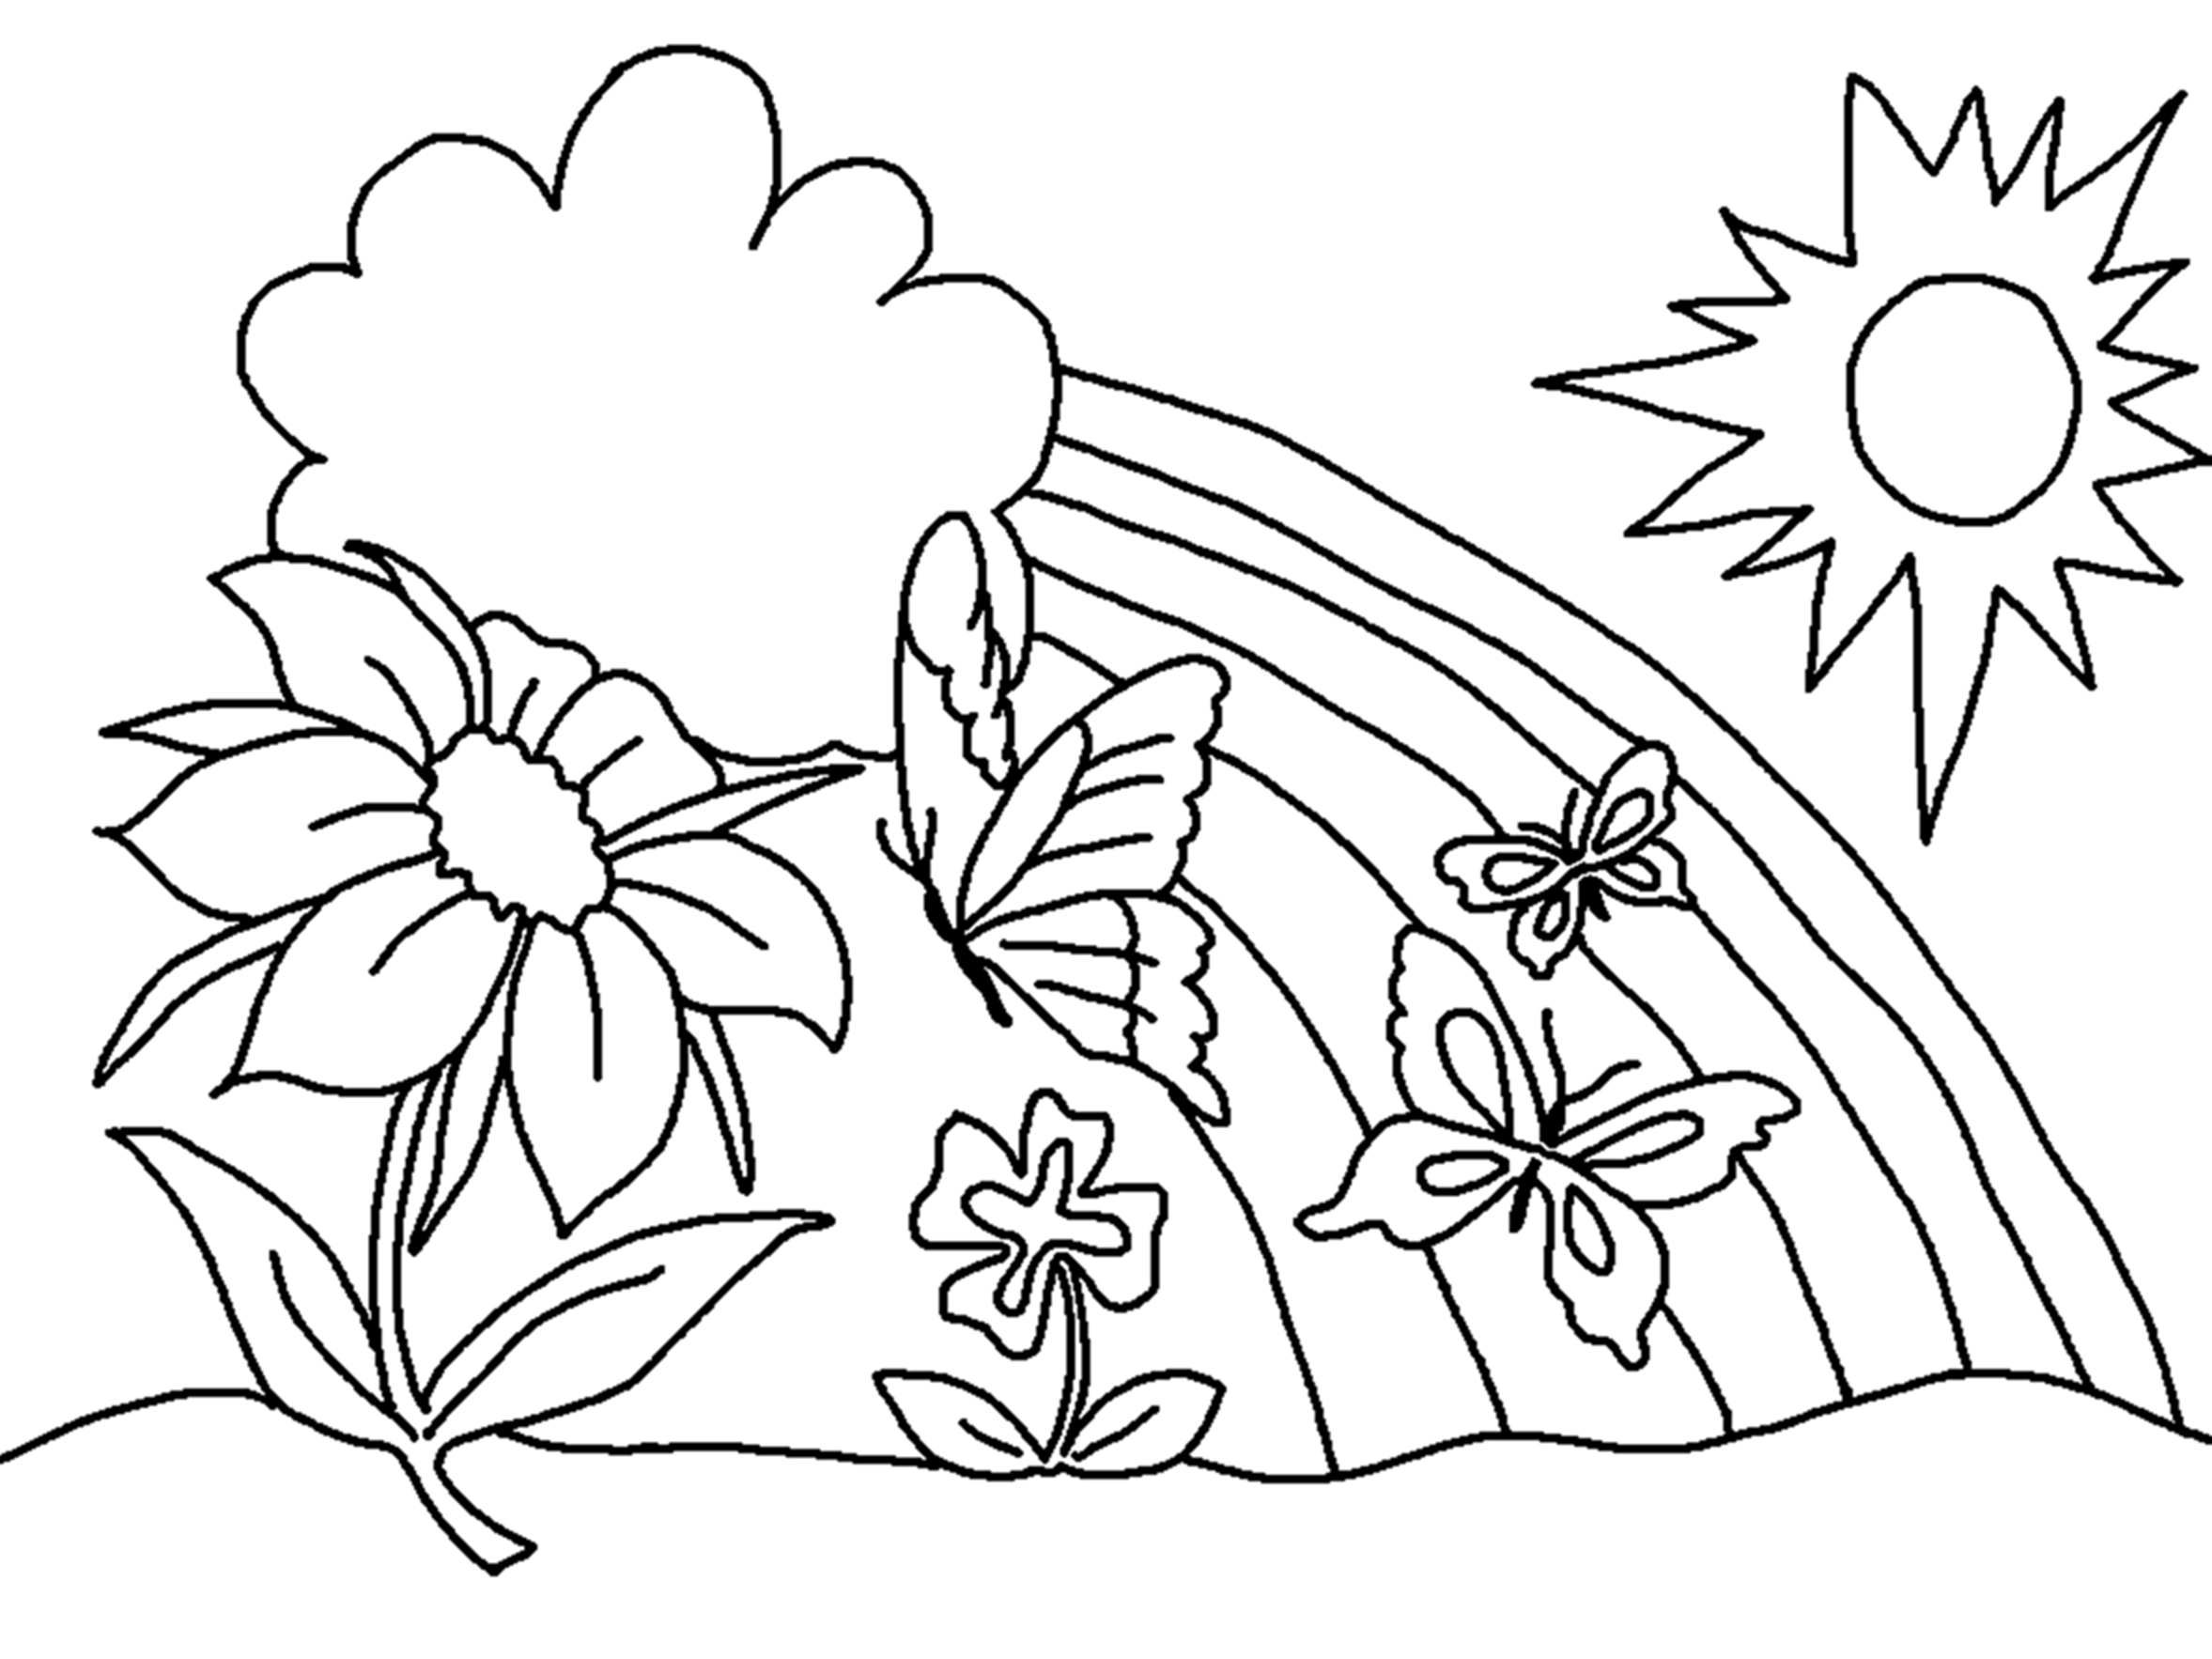 coloring pictures of a flower free printable flower coloring pages for kids best a flower coloring pictures of